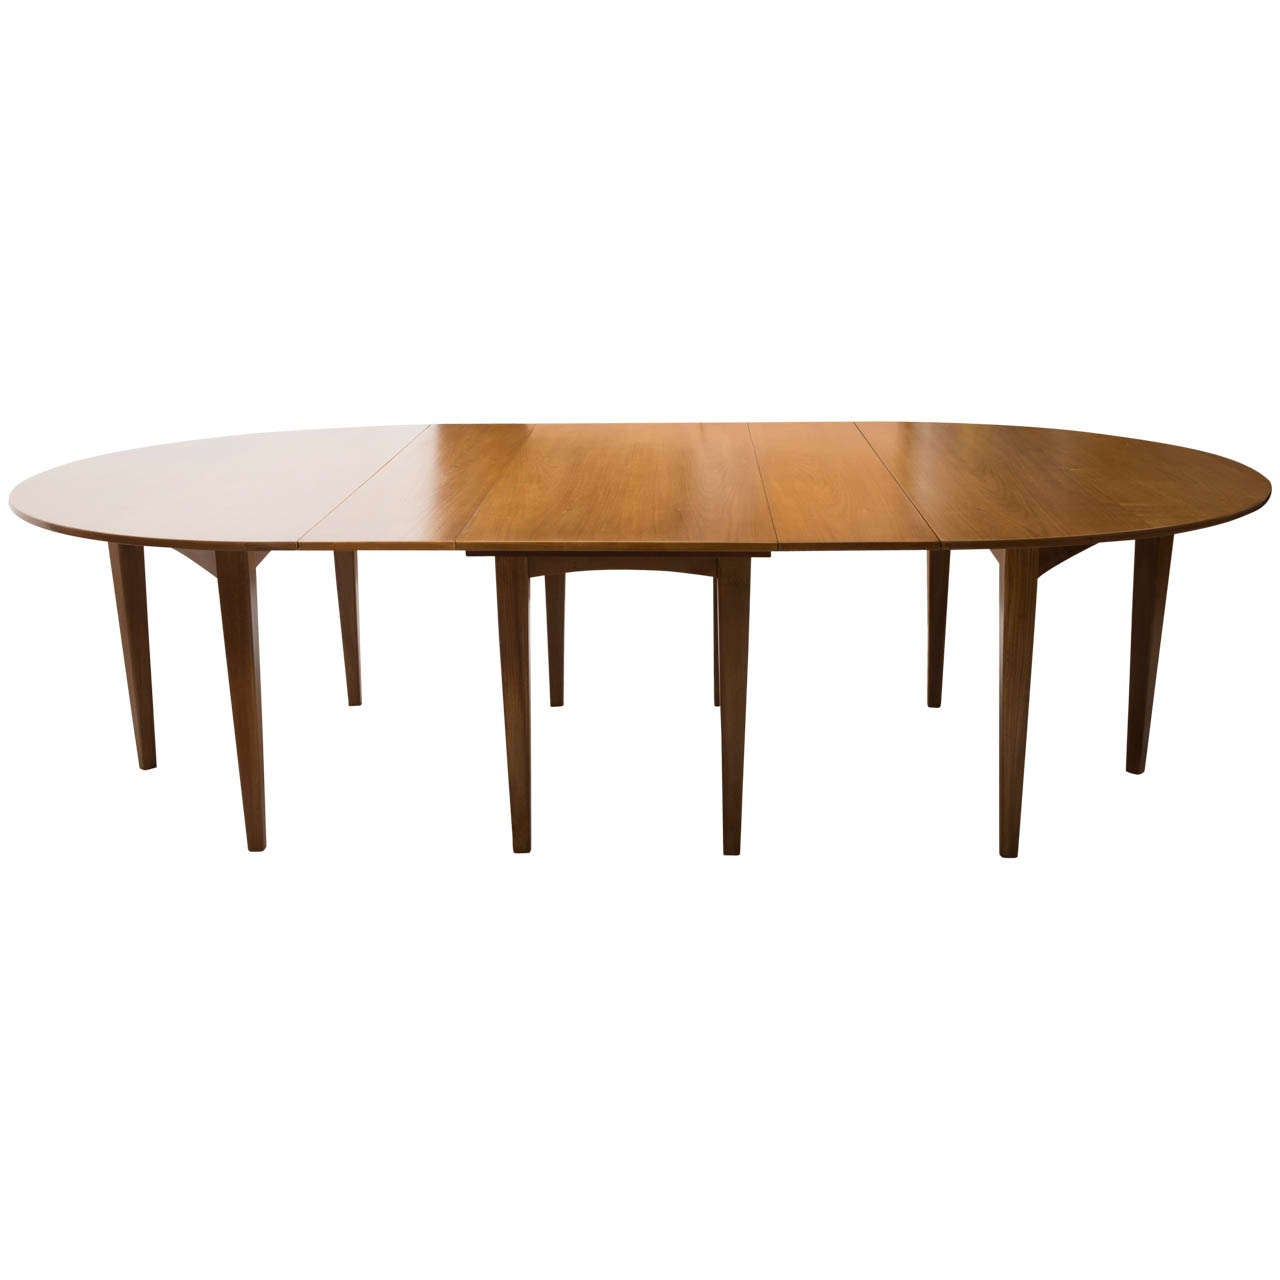 Large extending teak dining table by heals of london at for Dining room tables london